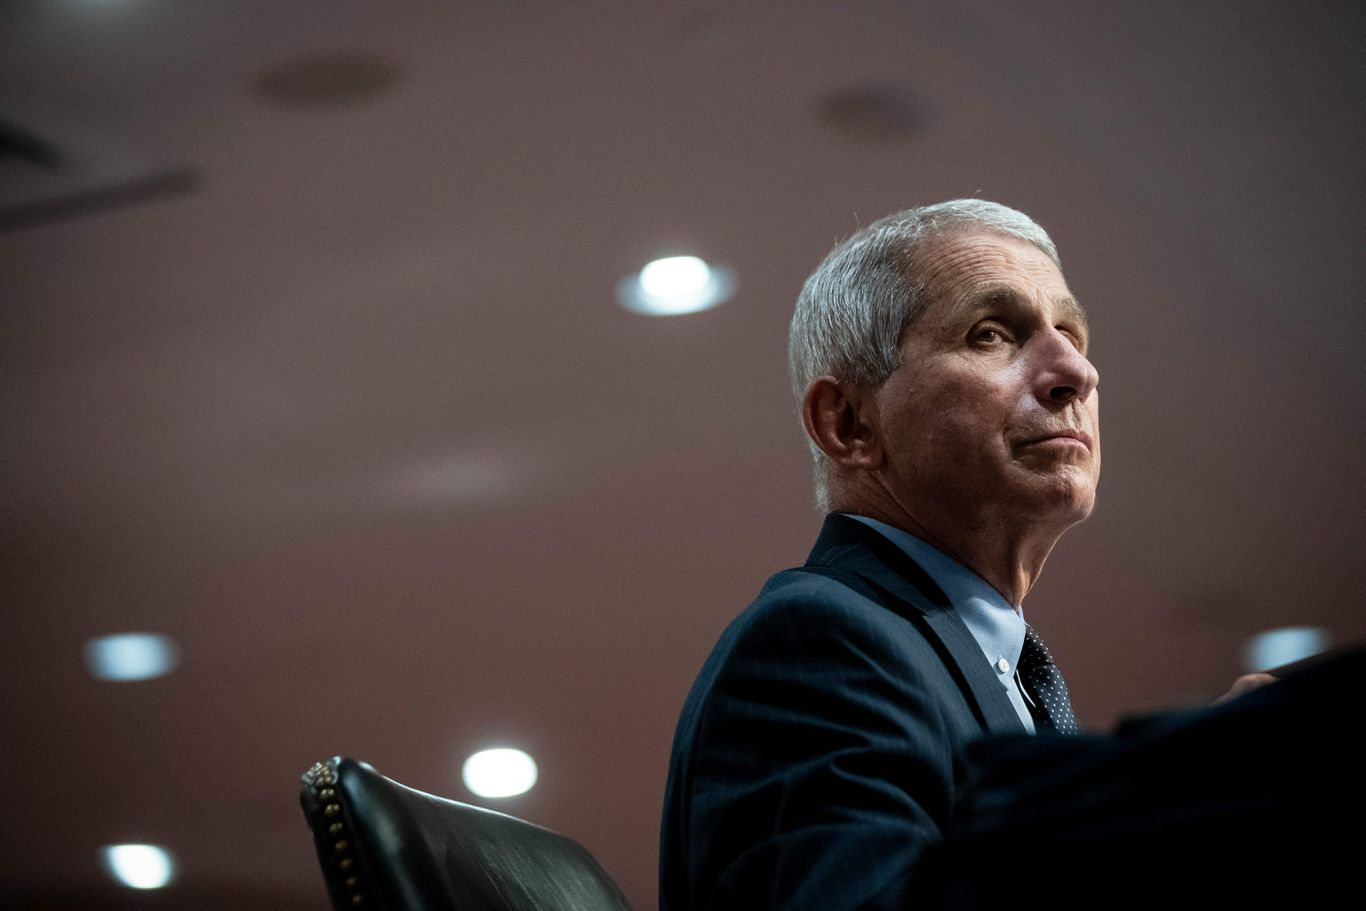 Nearly 3,500 health officials defend Fauci in open letter to Trump thumbnail